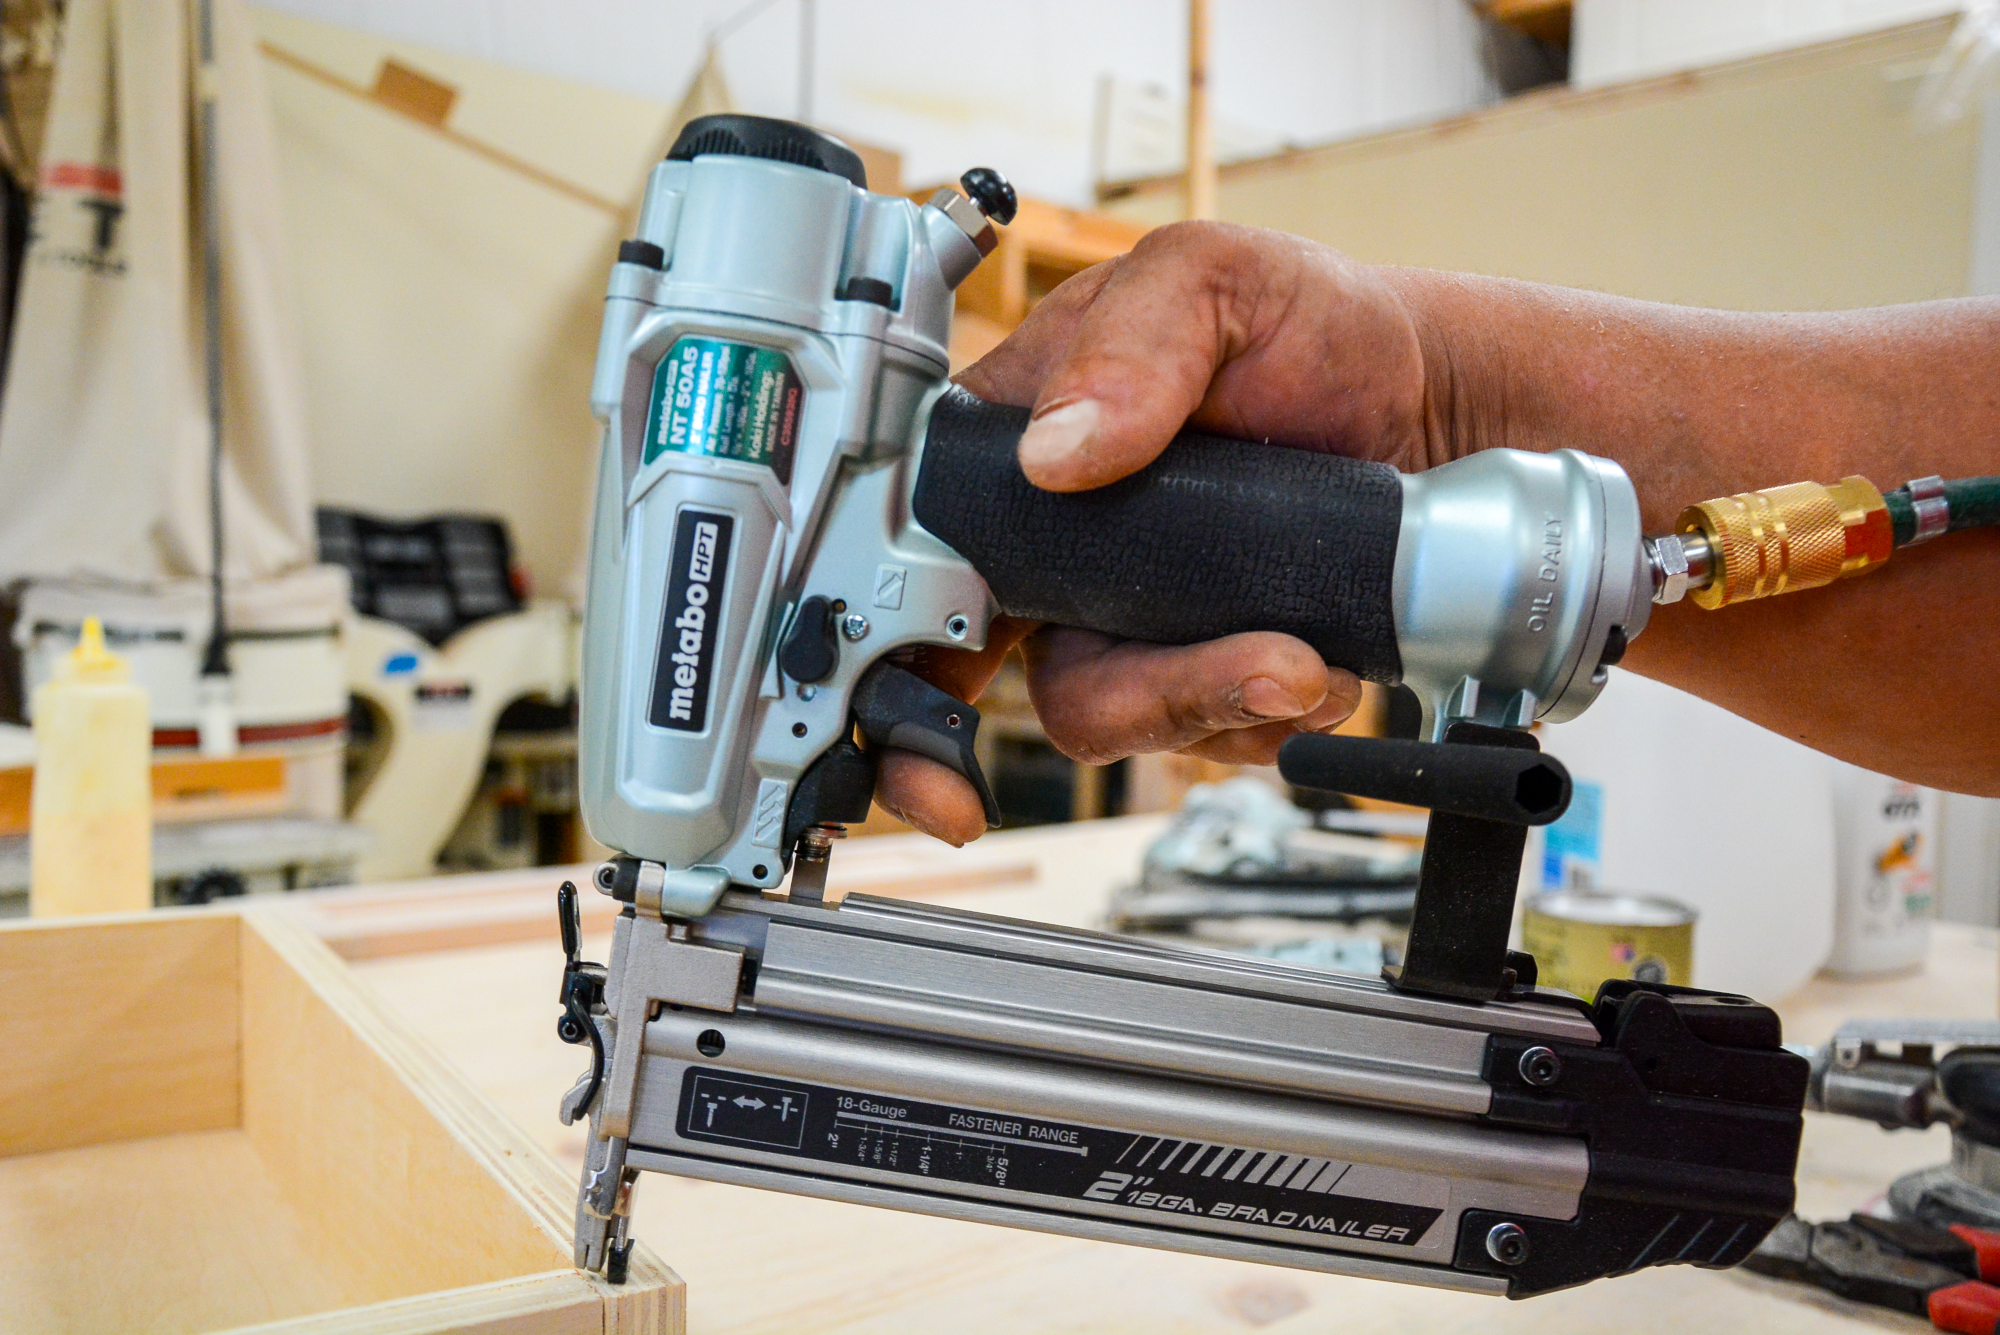 NT50A5 Finish Nailer Lifestyle